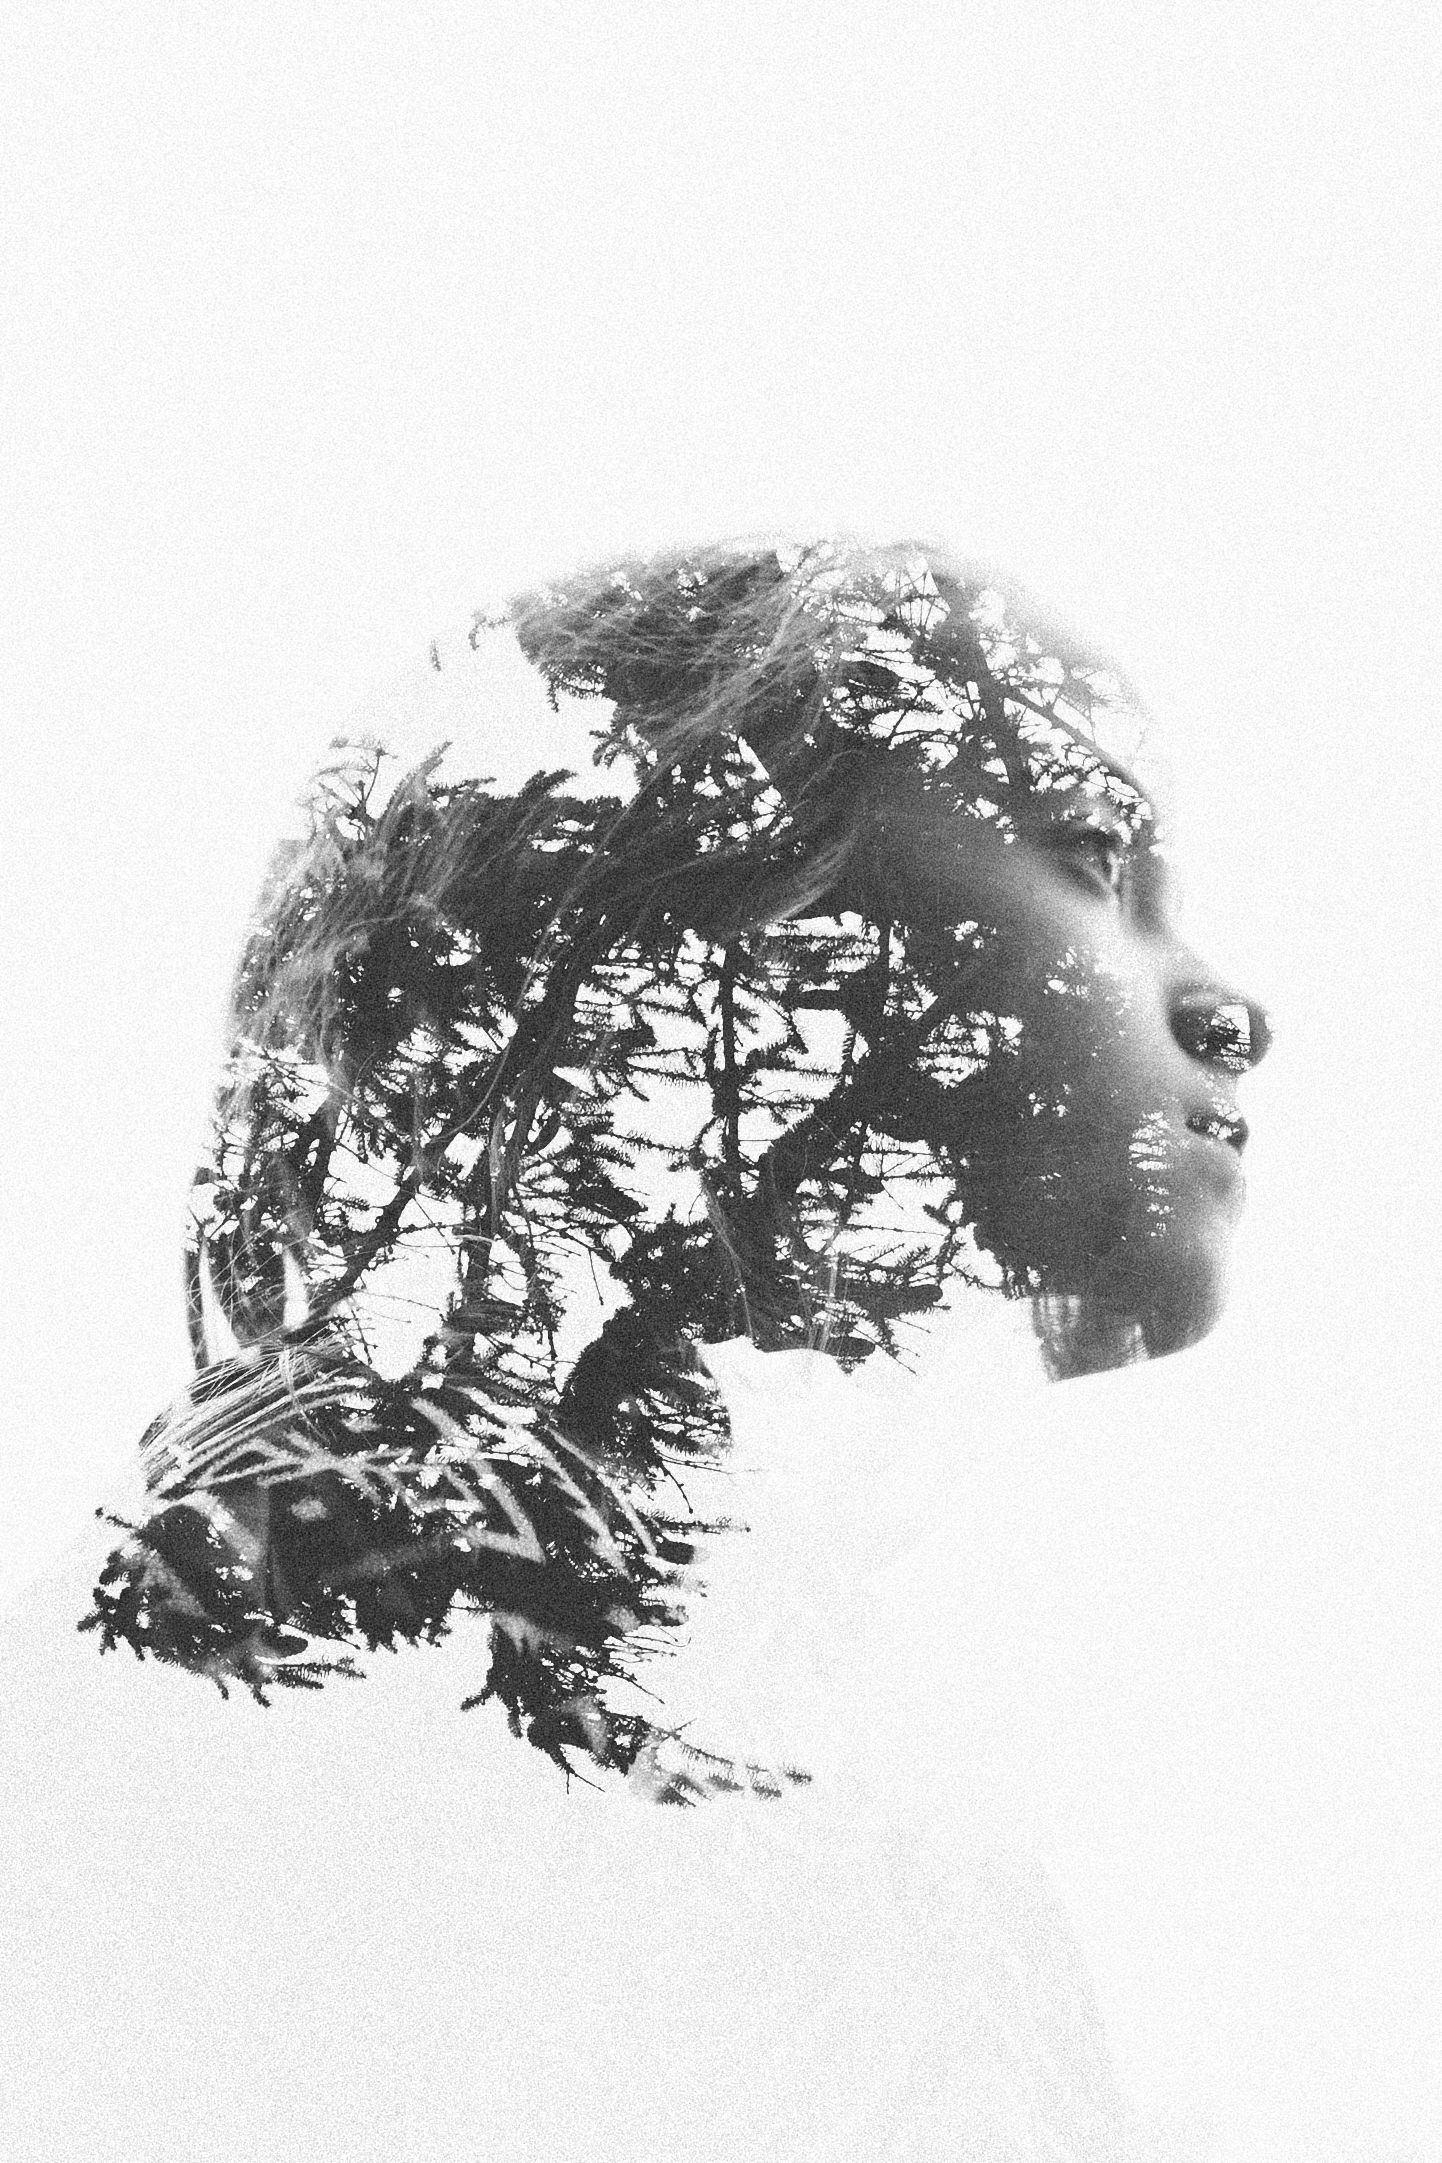 Double exposure with Canon 6D